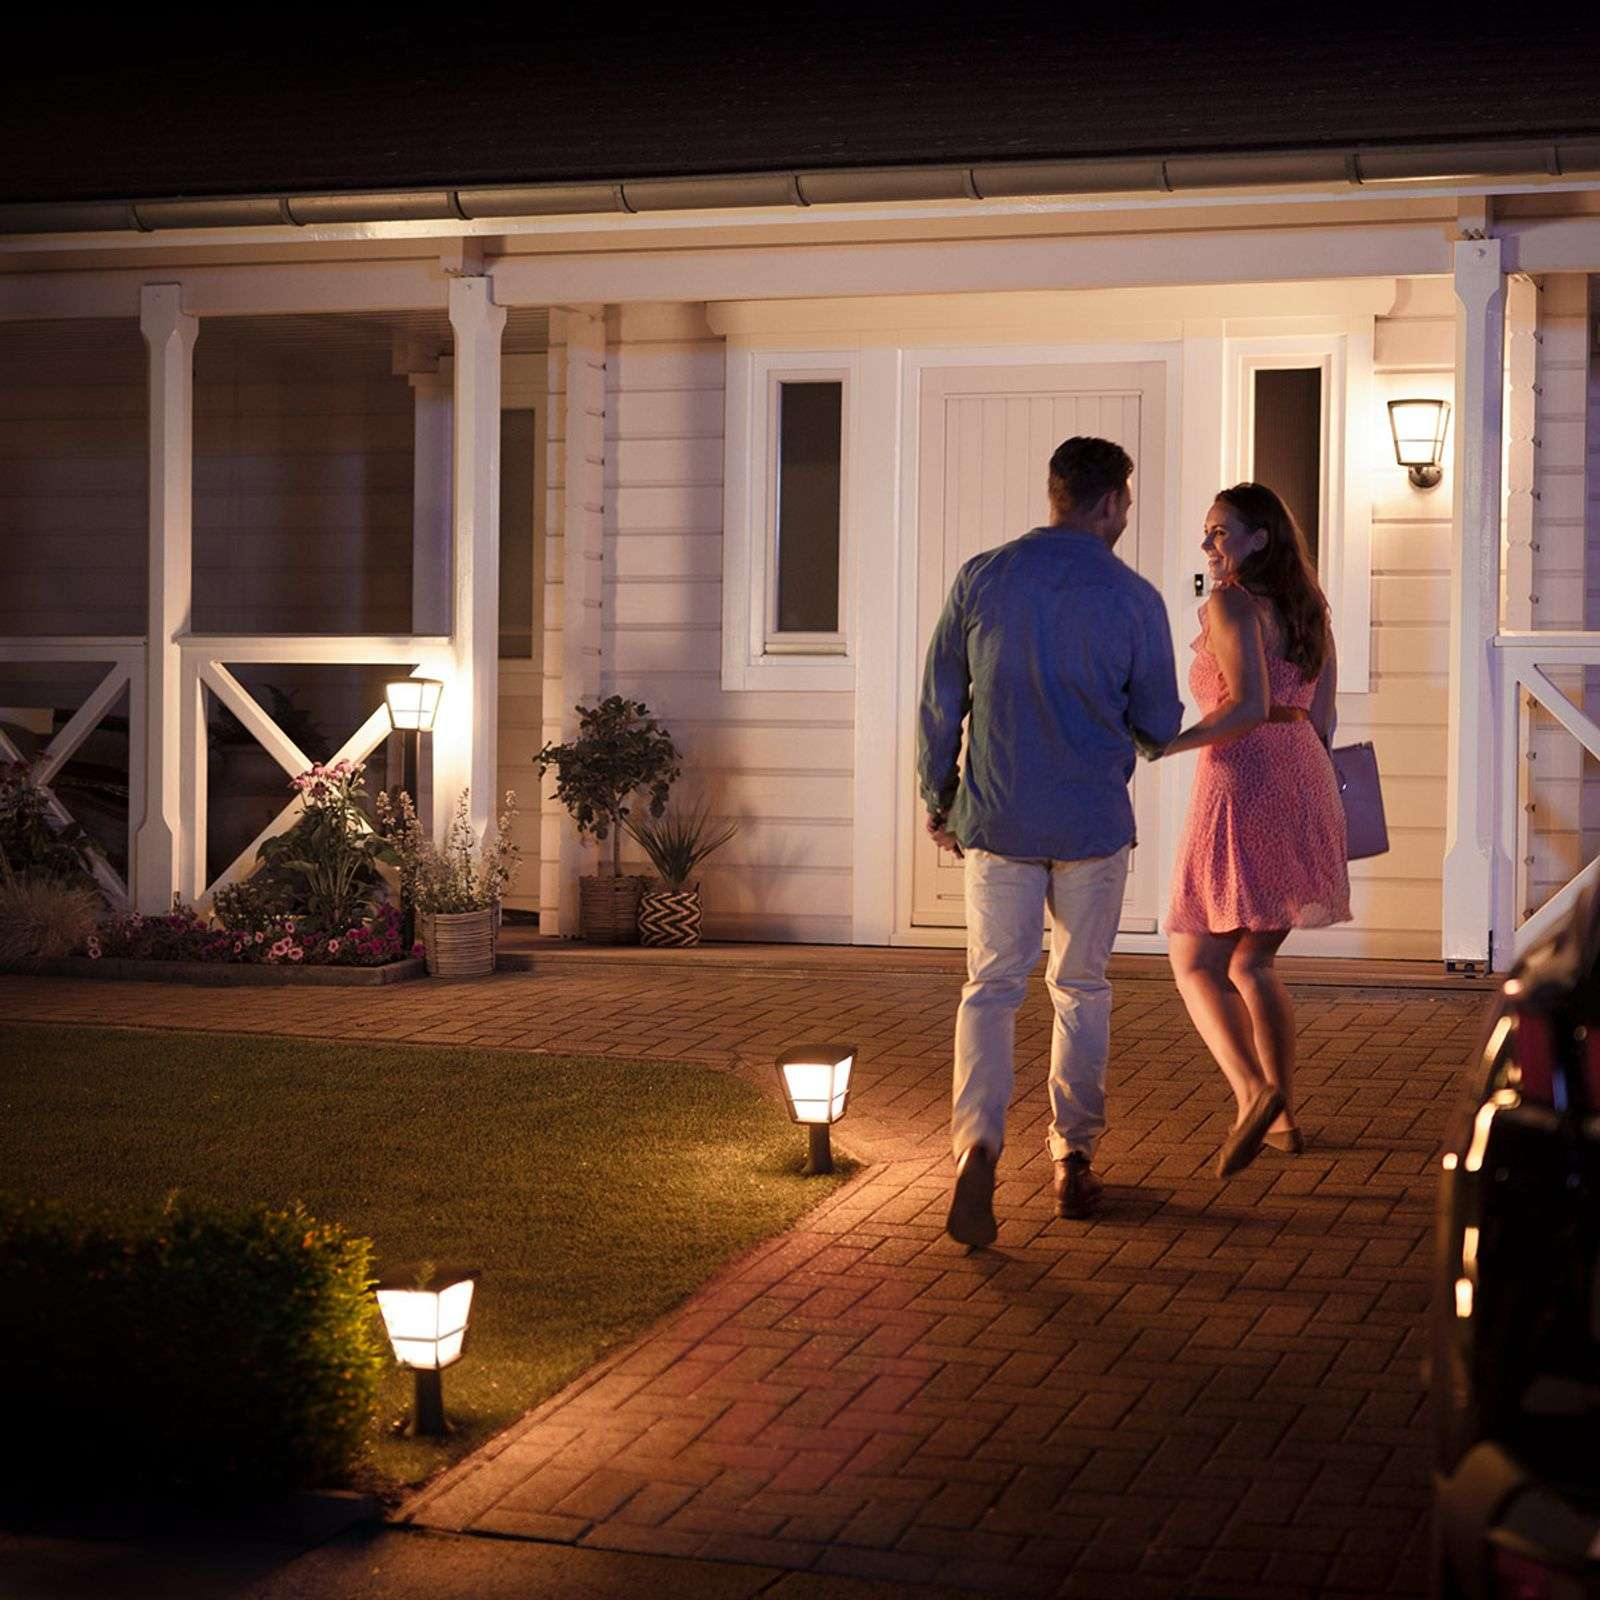 Philips Hue White+Color Econic lampioncino a LED-7534119-02